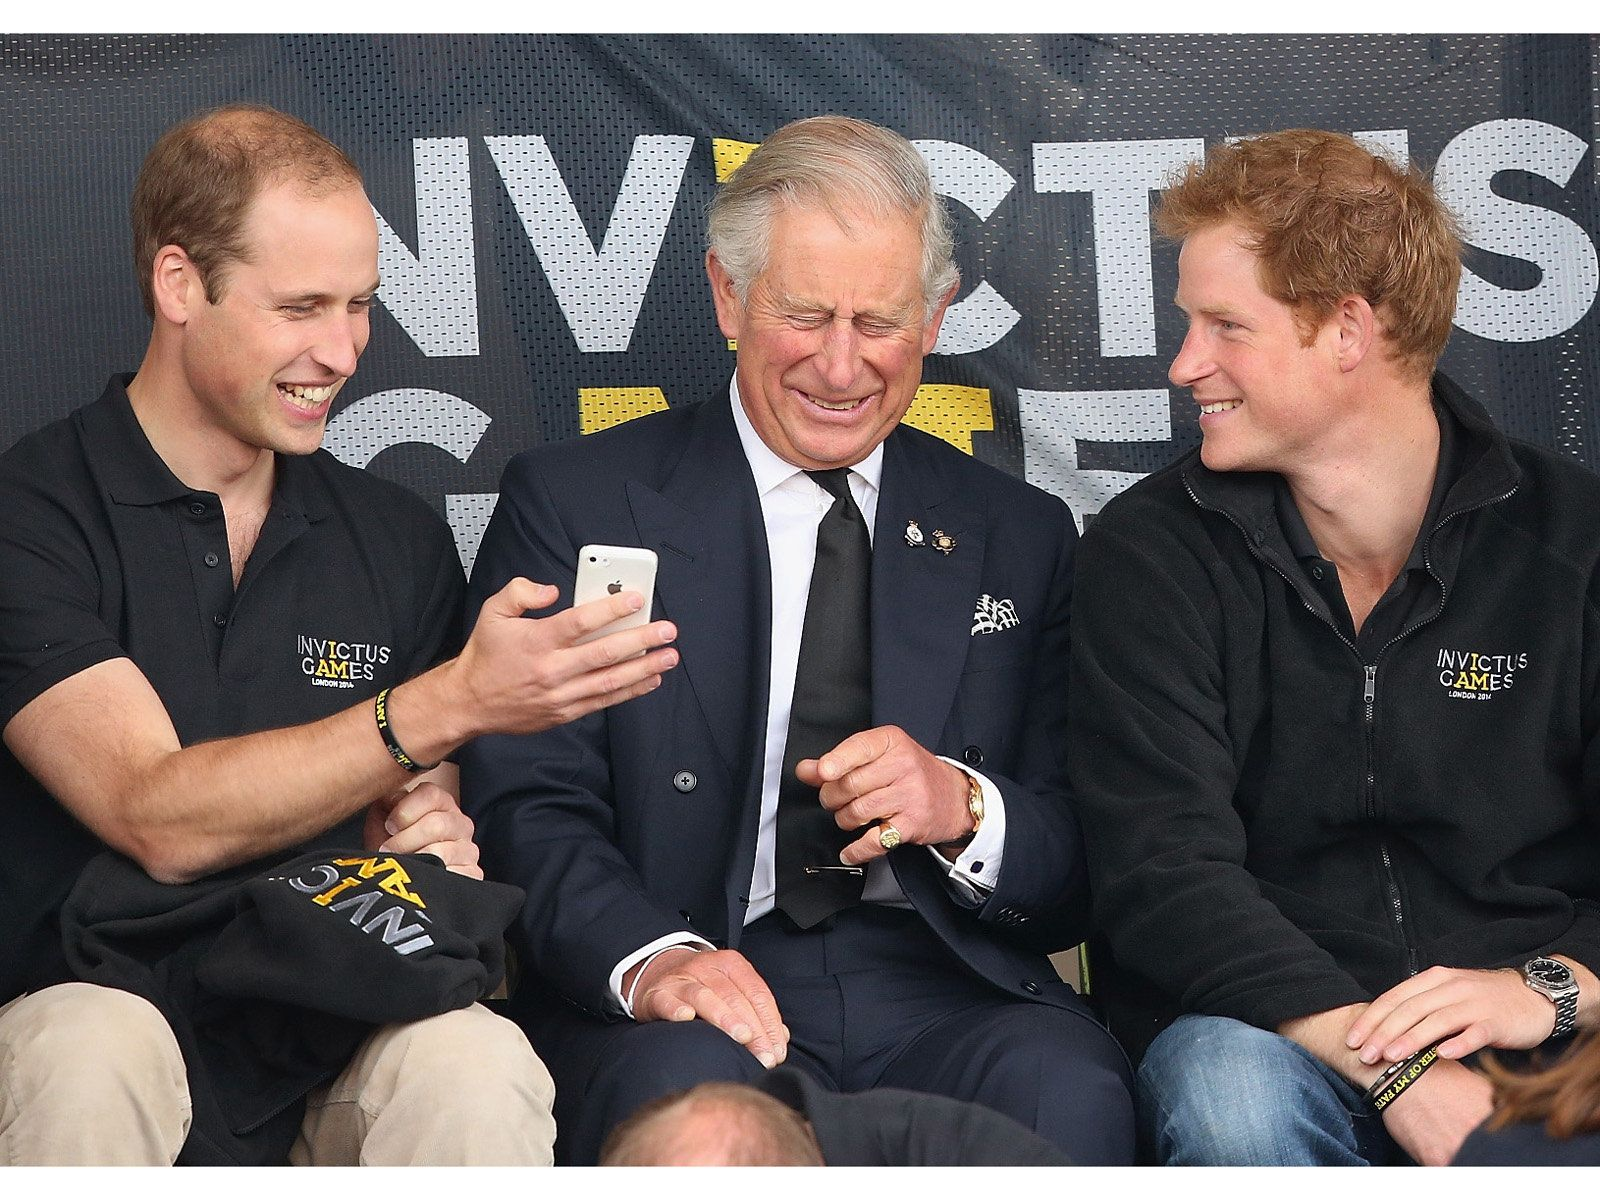 ウィリアム王子(Prince William)、チャールズ皇太子(Prince Charles)、ヘンリー王子(Prince Henry) photo   Getty Images